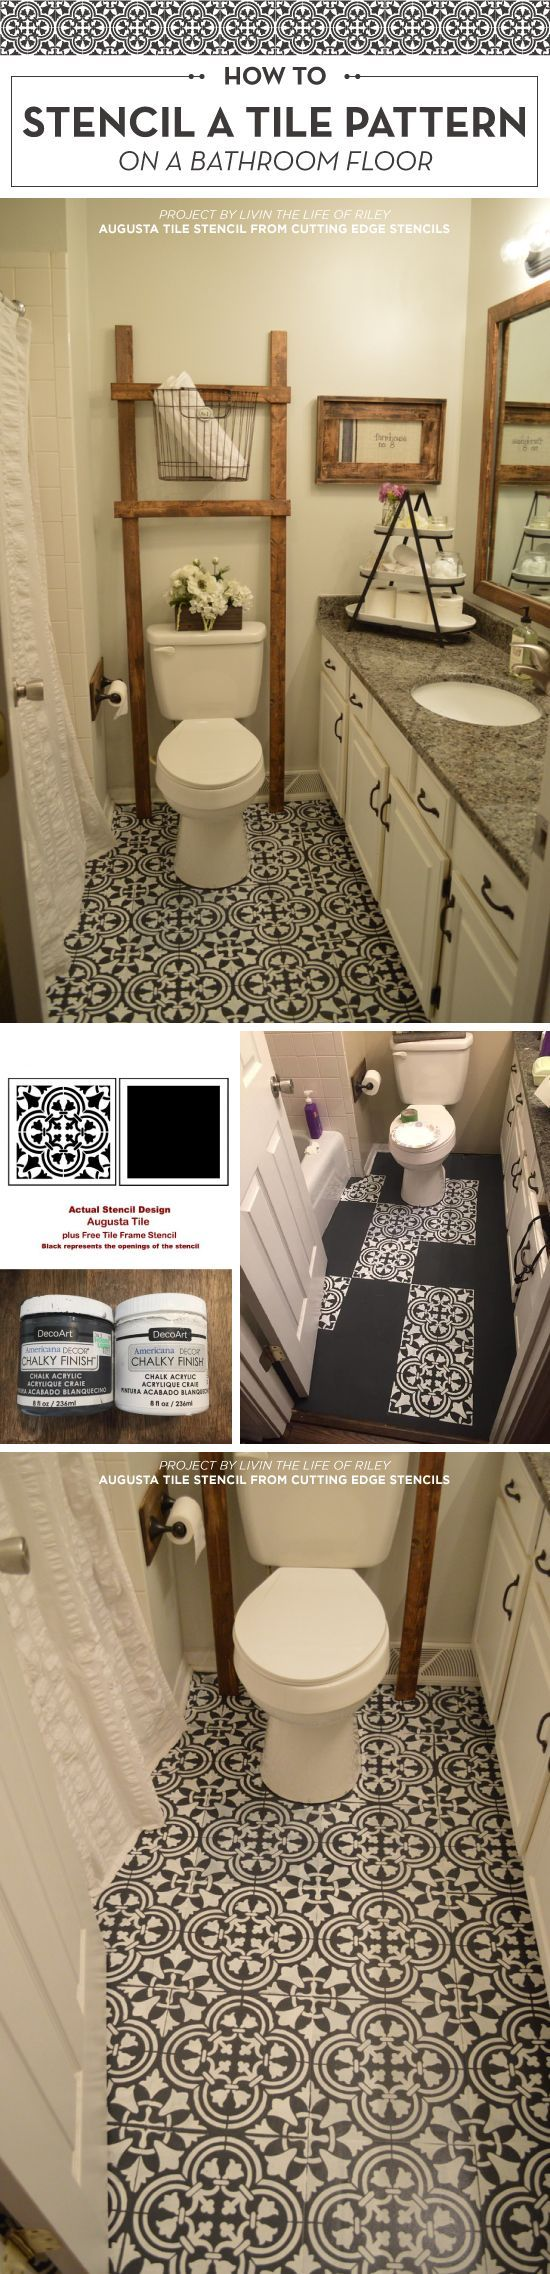 Cutting Edge Stencils shares a DIY stenciled linoleum floor project using the Augusta Tile Stencil pattern. http://www.cuttingedgestencils.com/augusta-tile-stencil-design-patchwork-tiles-stencils.html